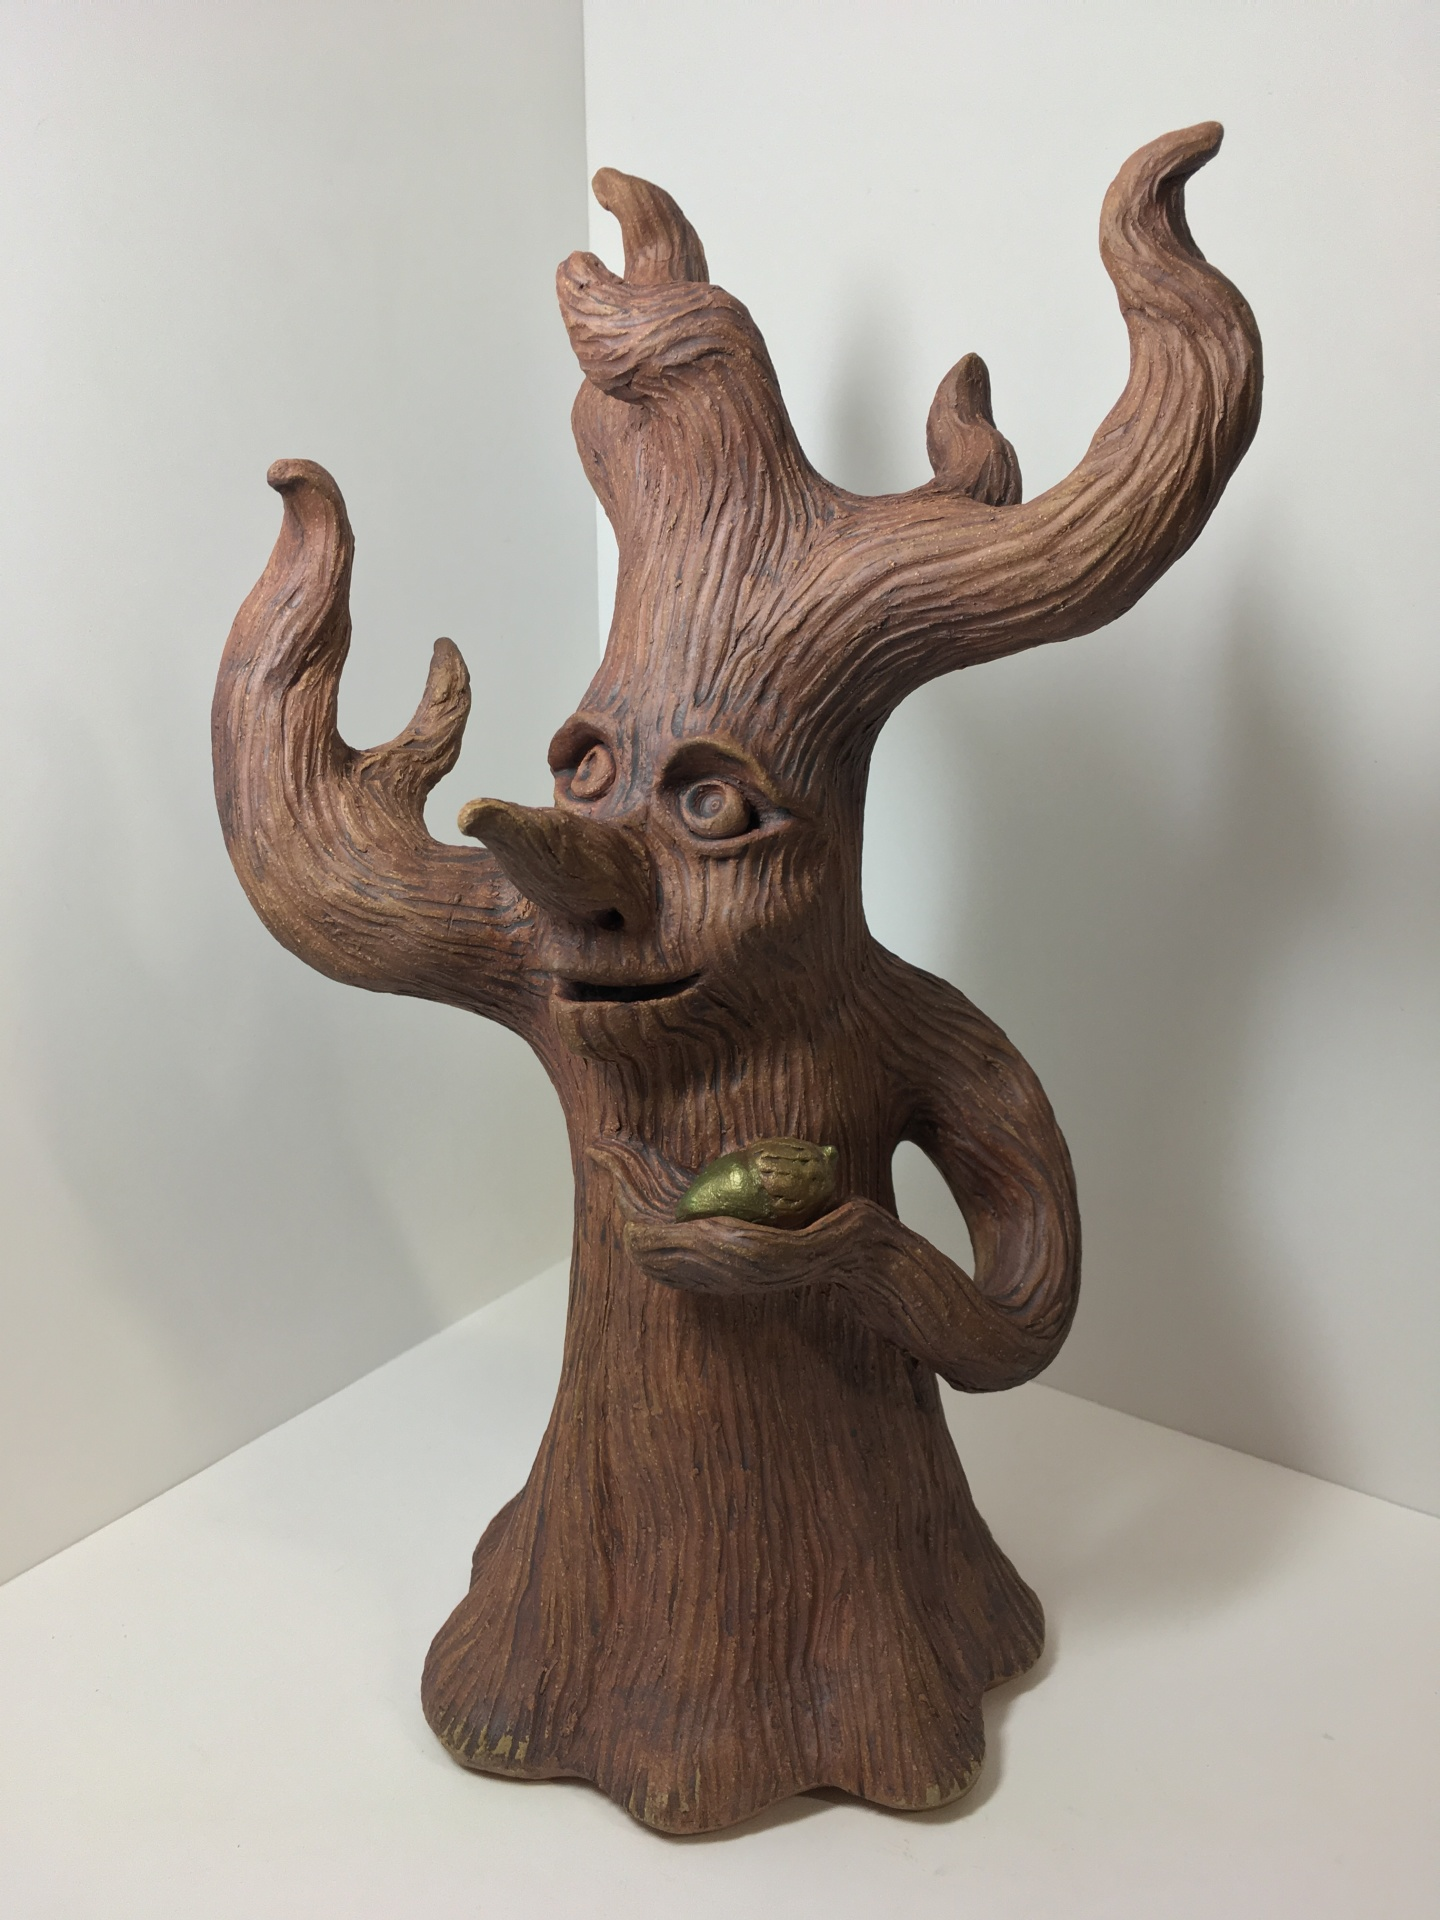 tree spirit, druid sculpture, tree lord, tree sculpture, handmade pottery, by cindi hardwicke